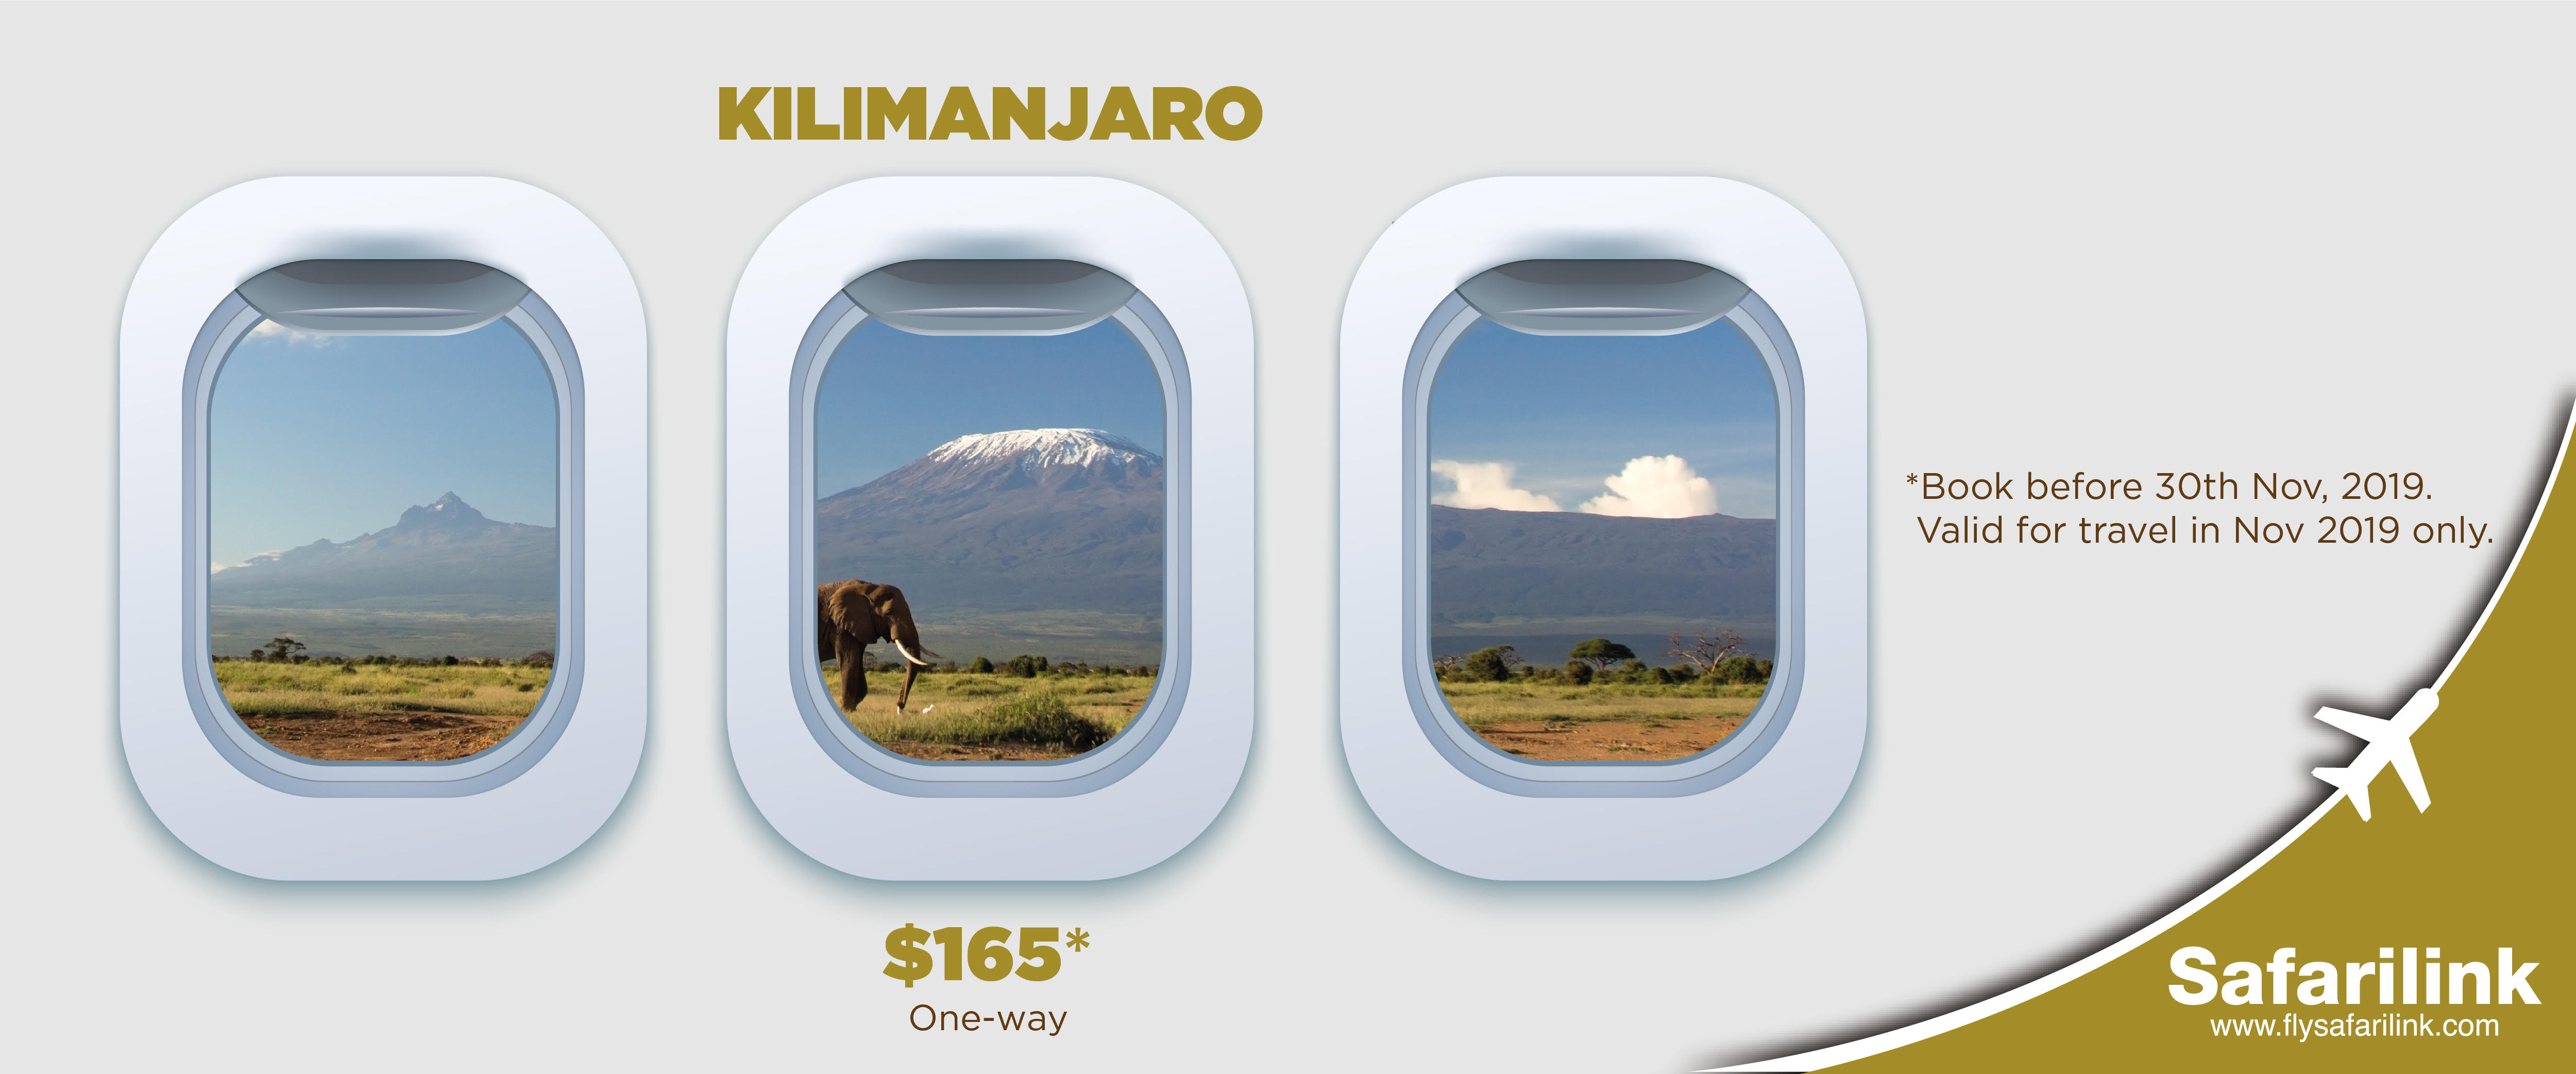 Flying you directly from Wilson Airport to Kilimanjaro